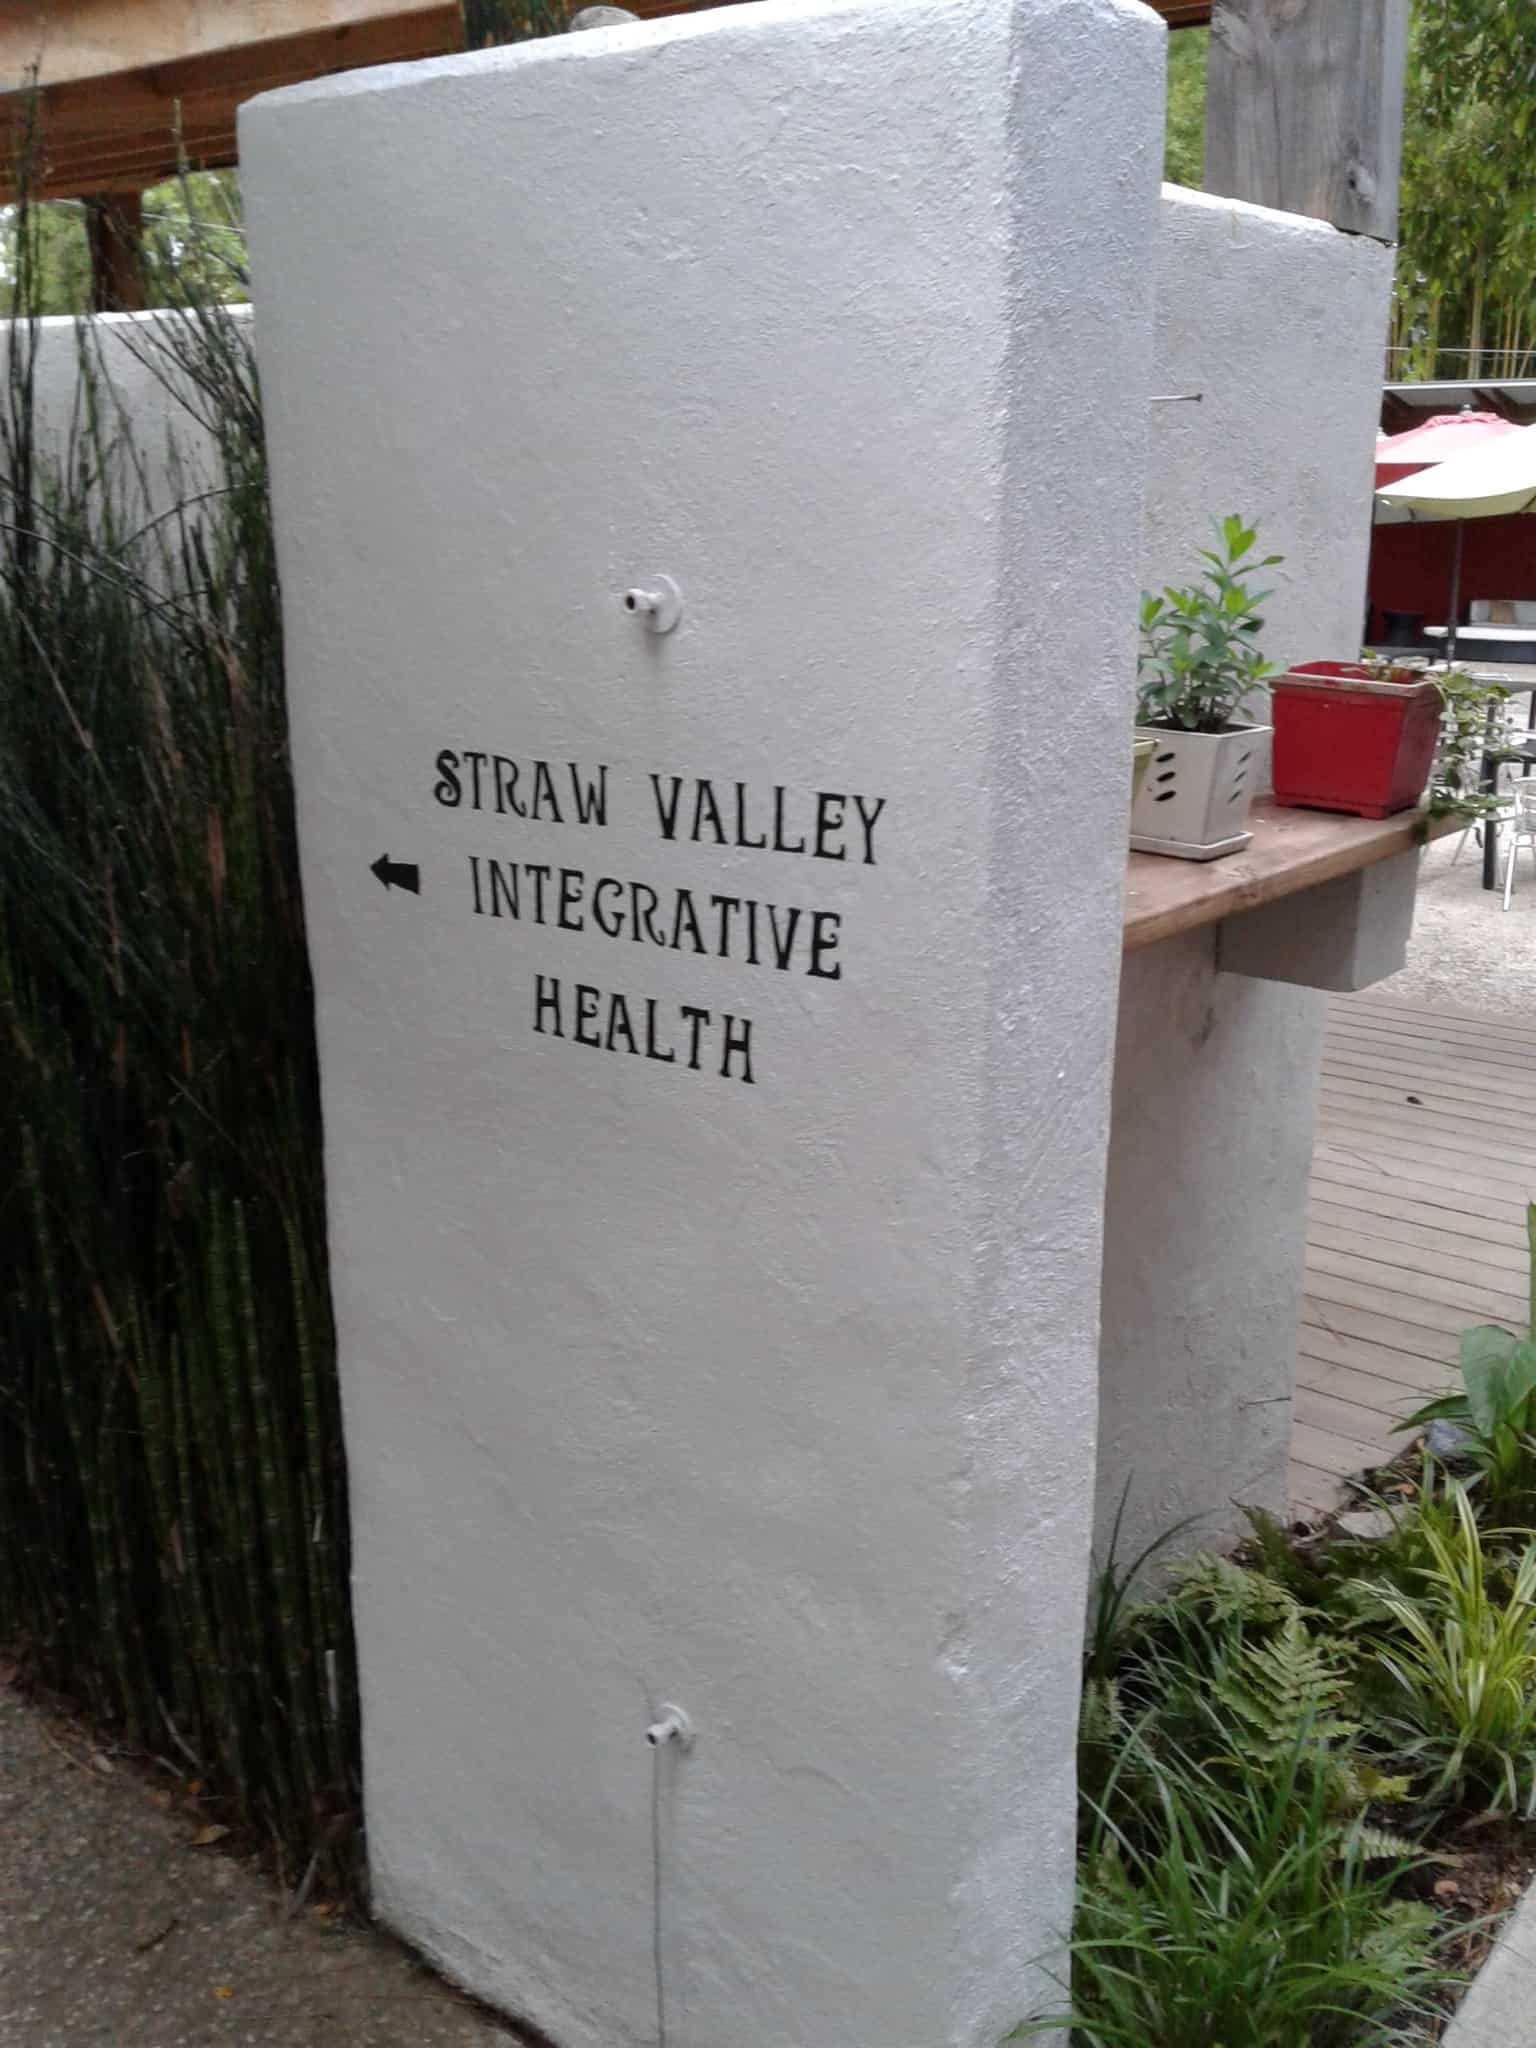 Straw Valley Integrative Health an Oasis on 15-501